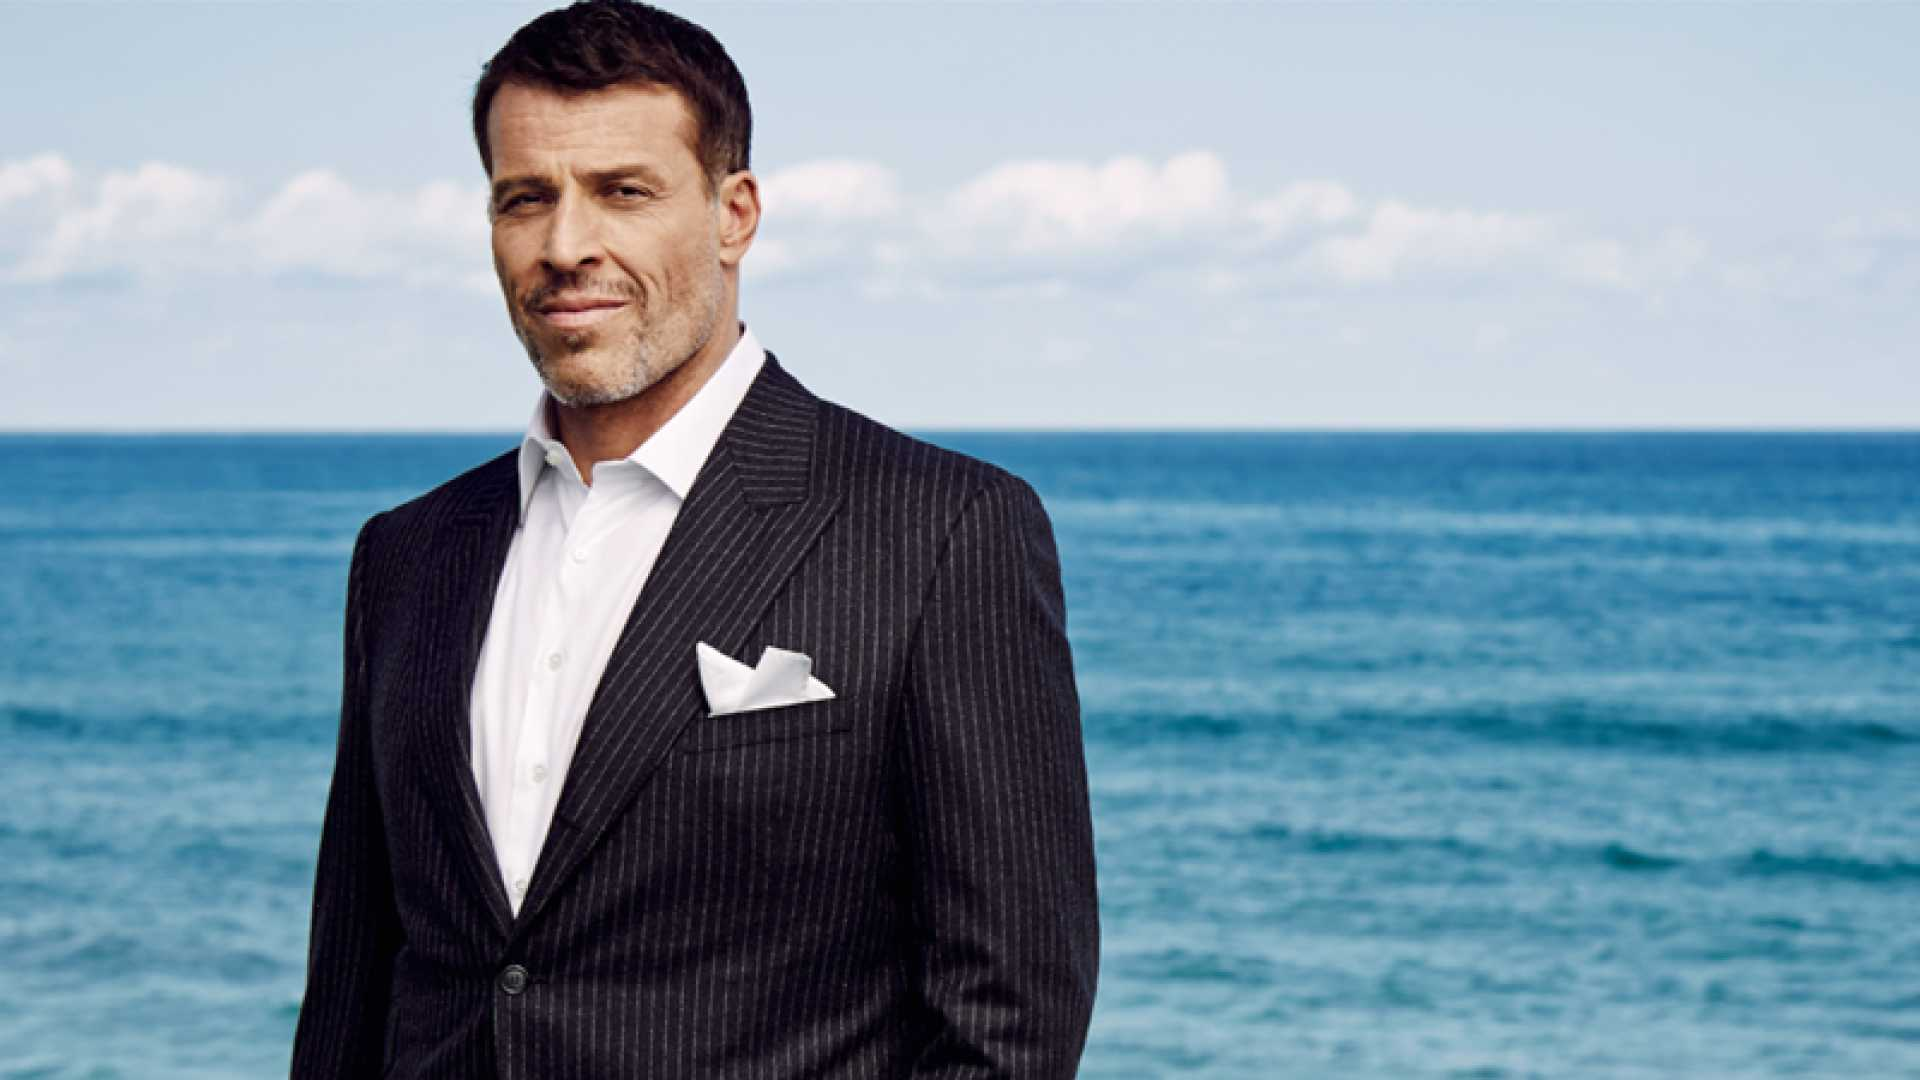 Tony Robbins's Incredibly Simple Secret to Wealth